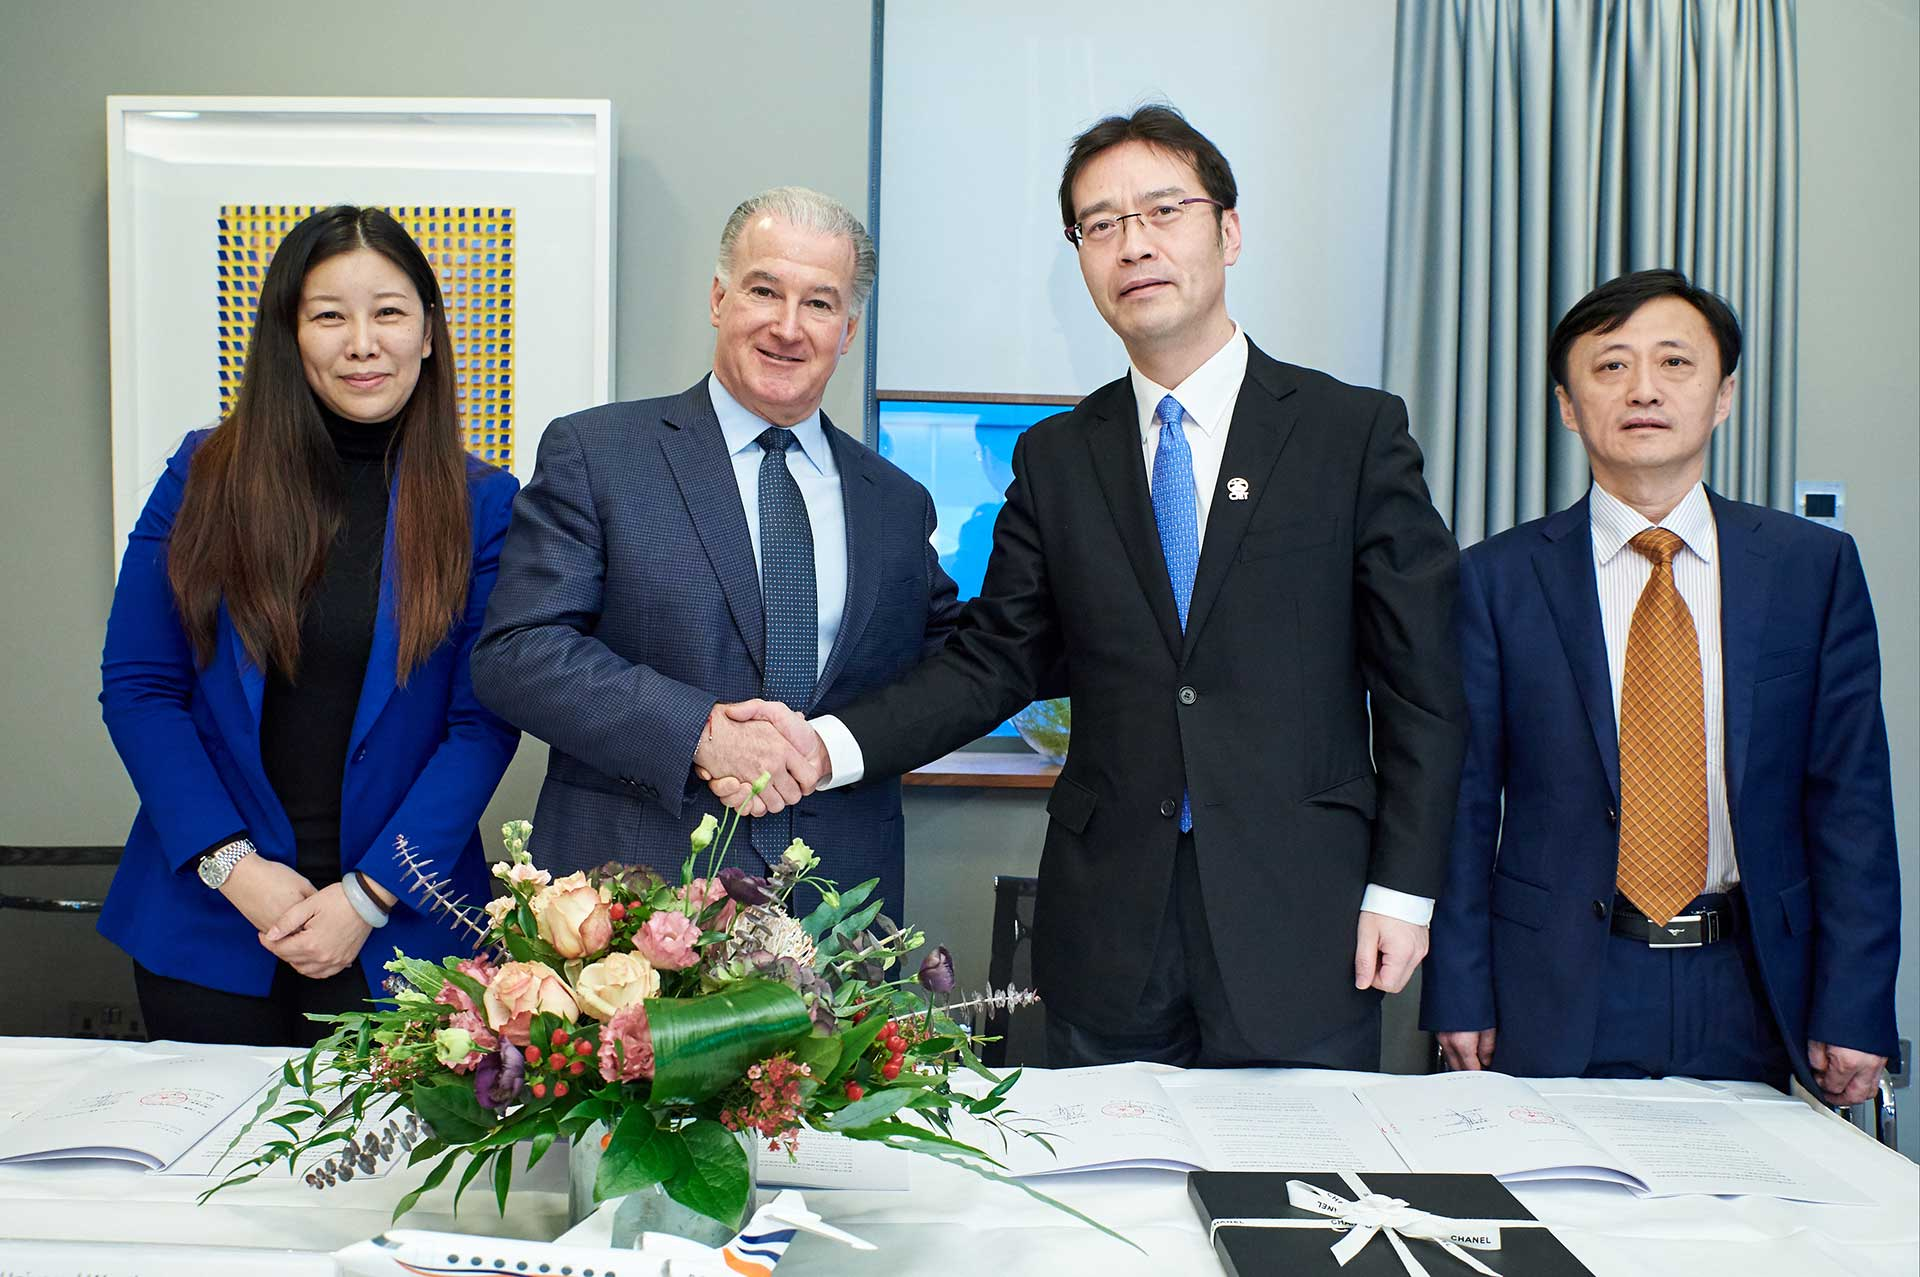 Universal partners with CJET to enhance service levels at Beijing Capital Airport (ZBAA)